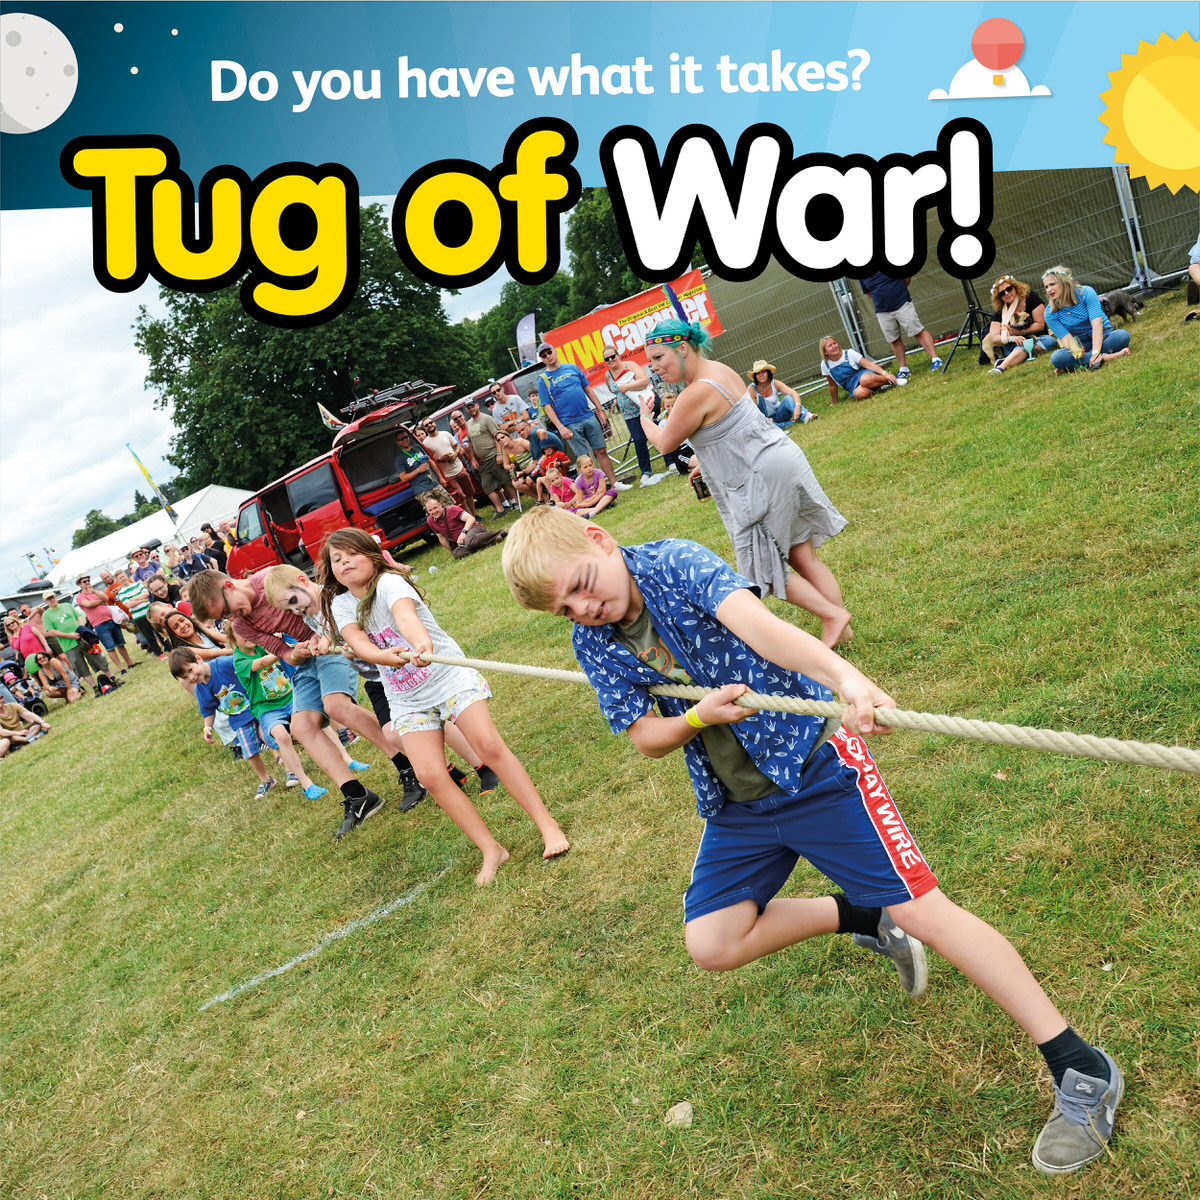 CJ19 FB TUG O WAR 01TILE.jpg